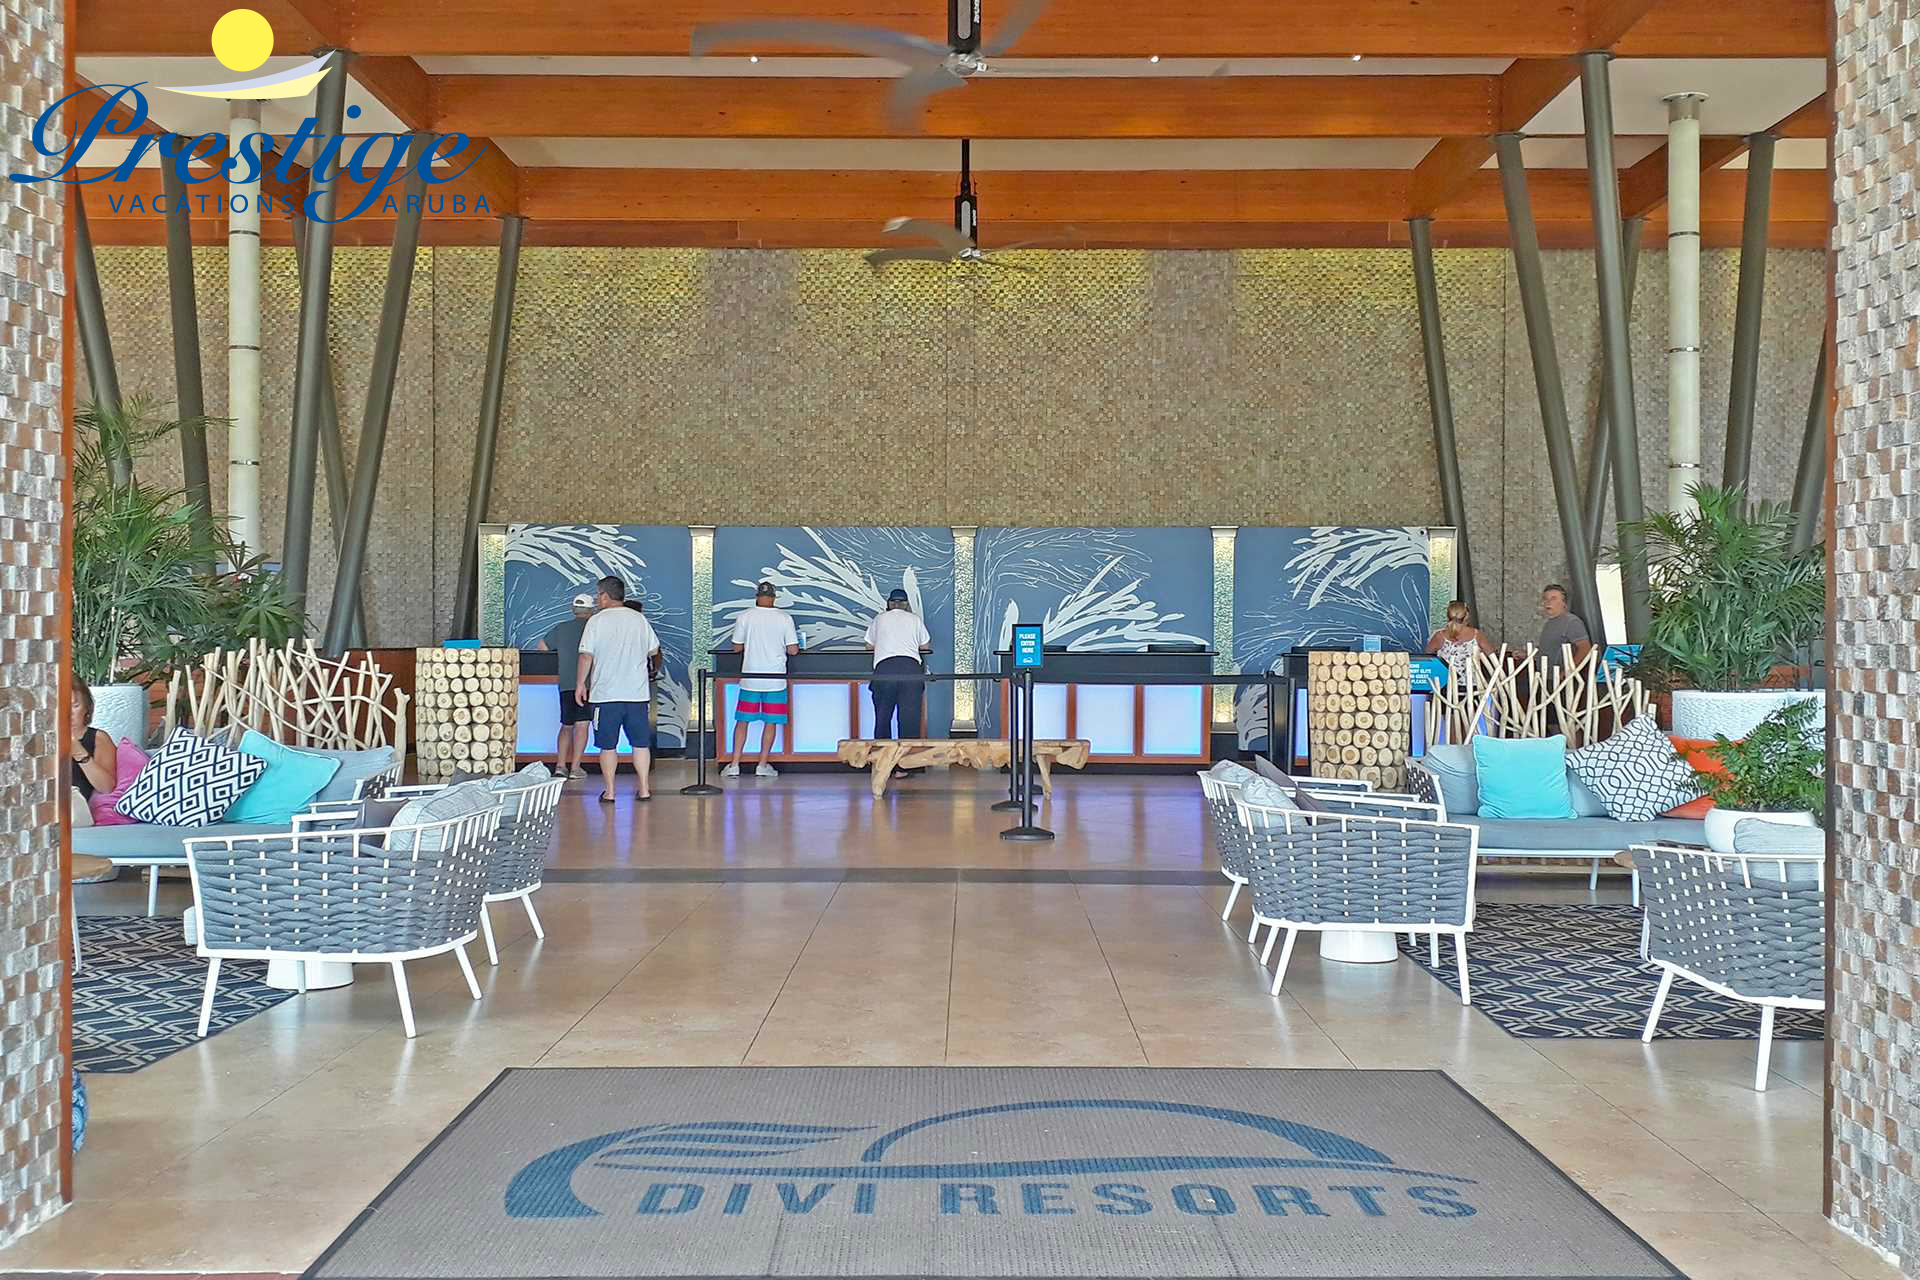 The lobby (front desk) of the Divi Village Golf & Beach Resort